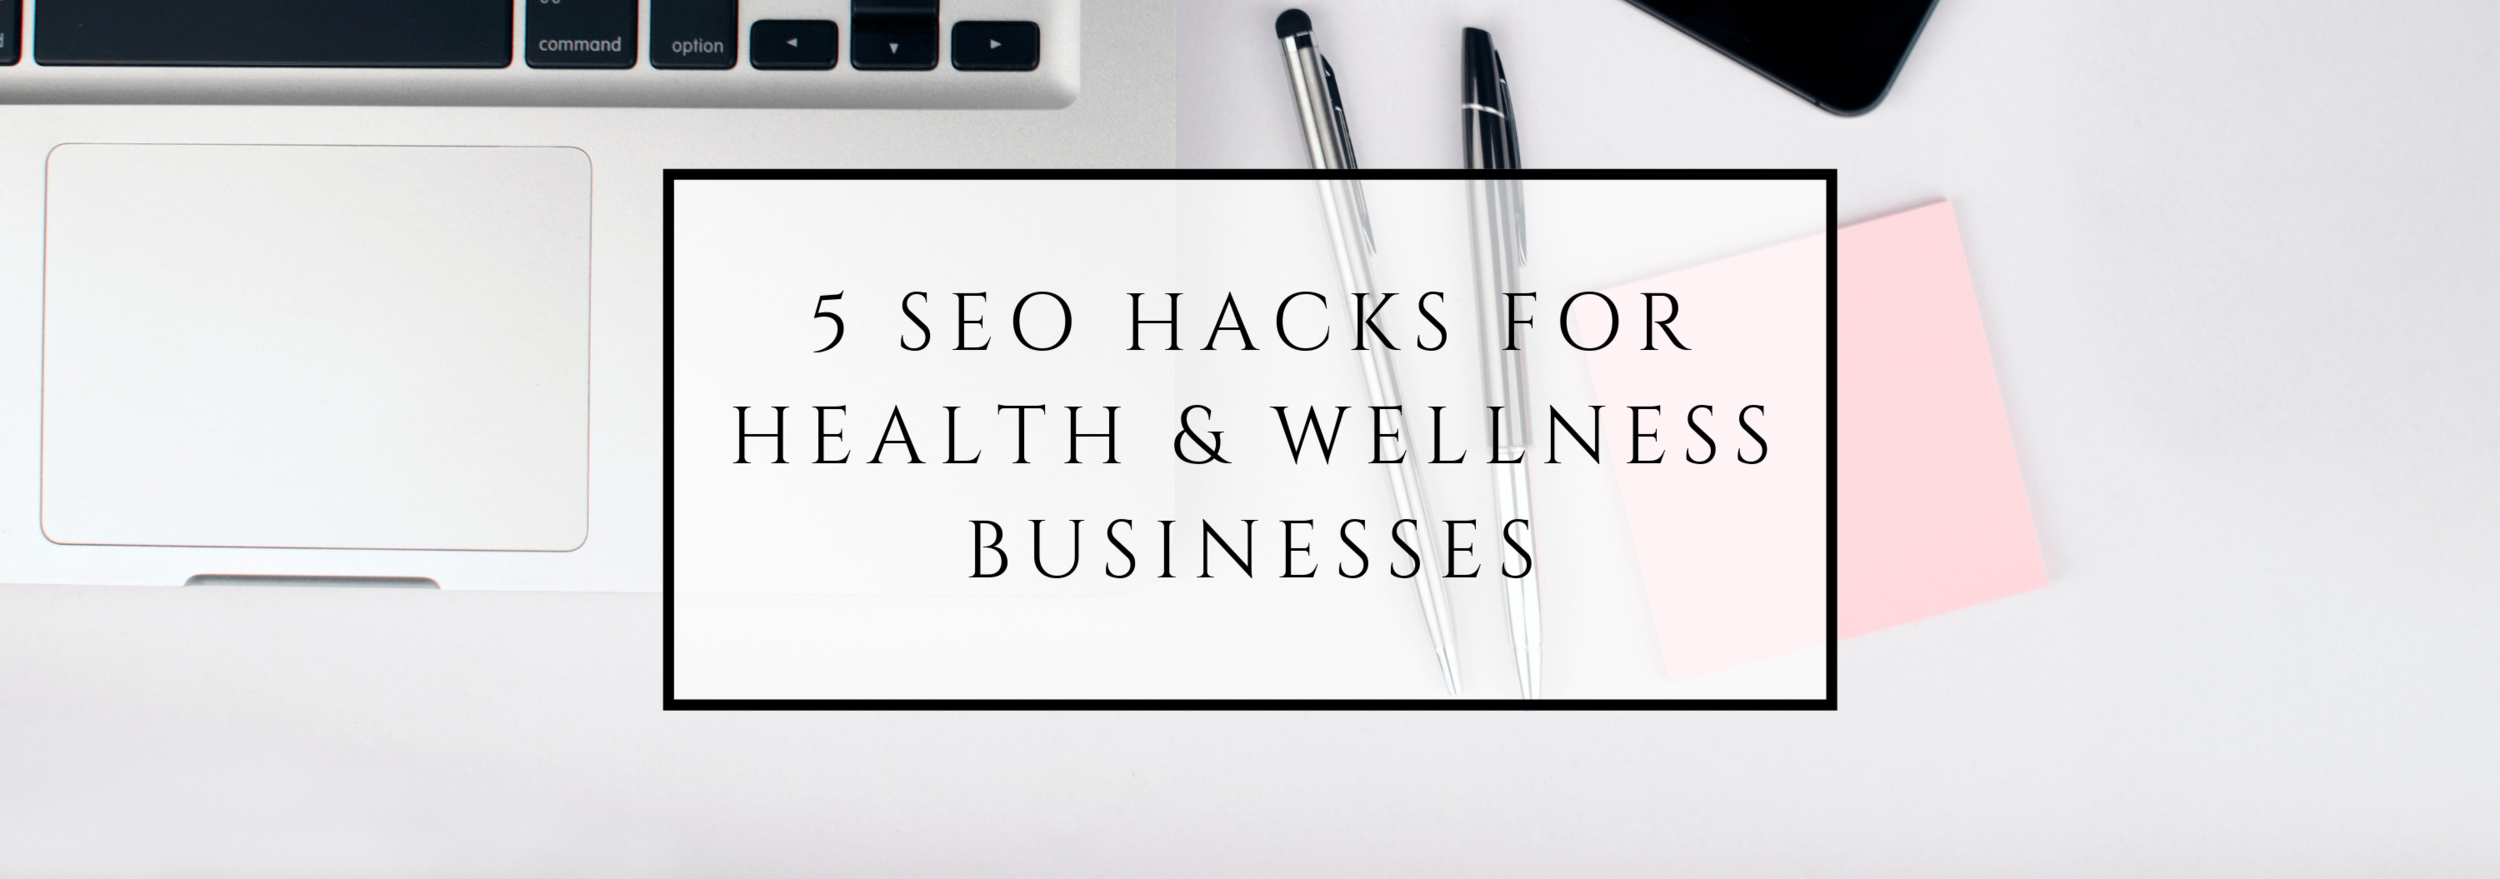 5 SEO Hacks for health and wellness businesses.png